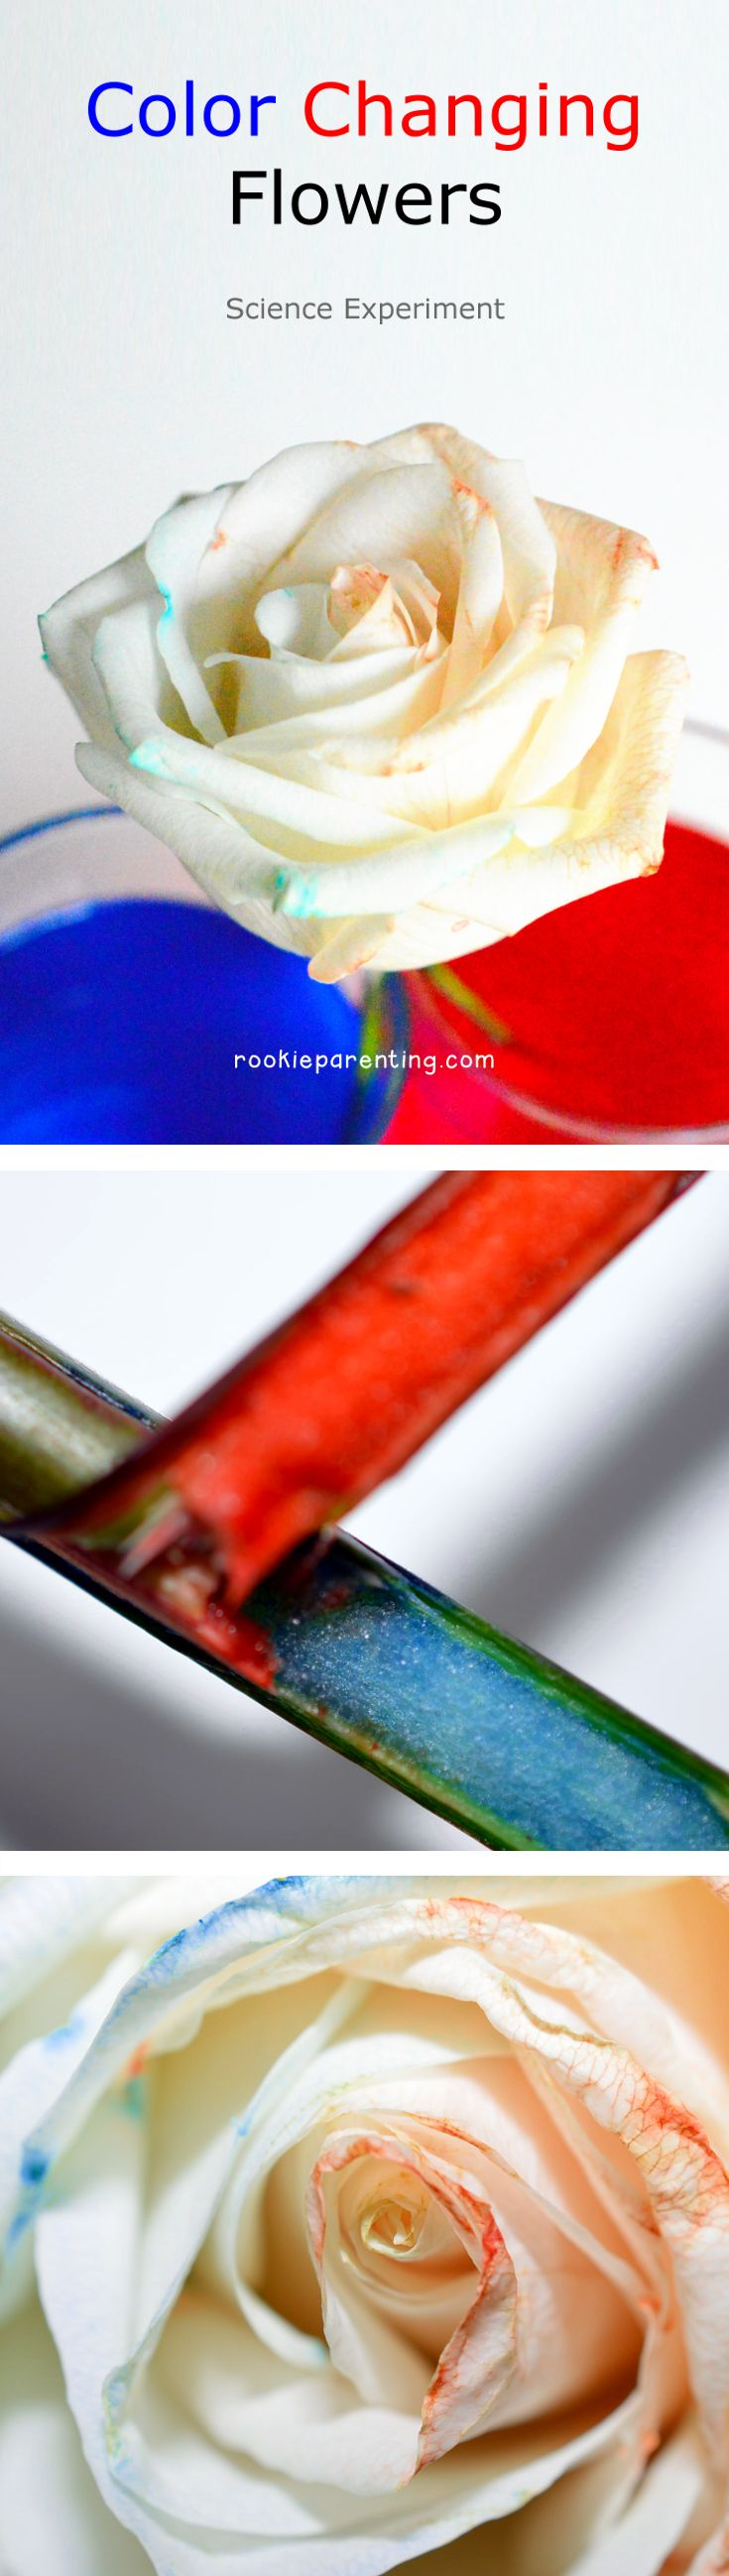 Color Changing Flowers Science Project | Change, Flowers and Activities